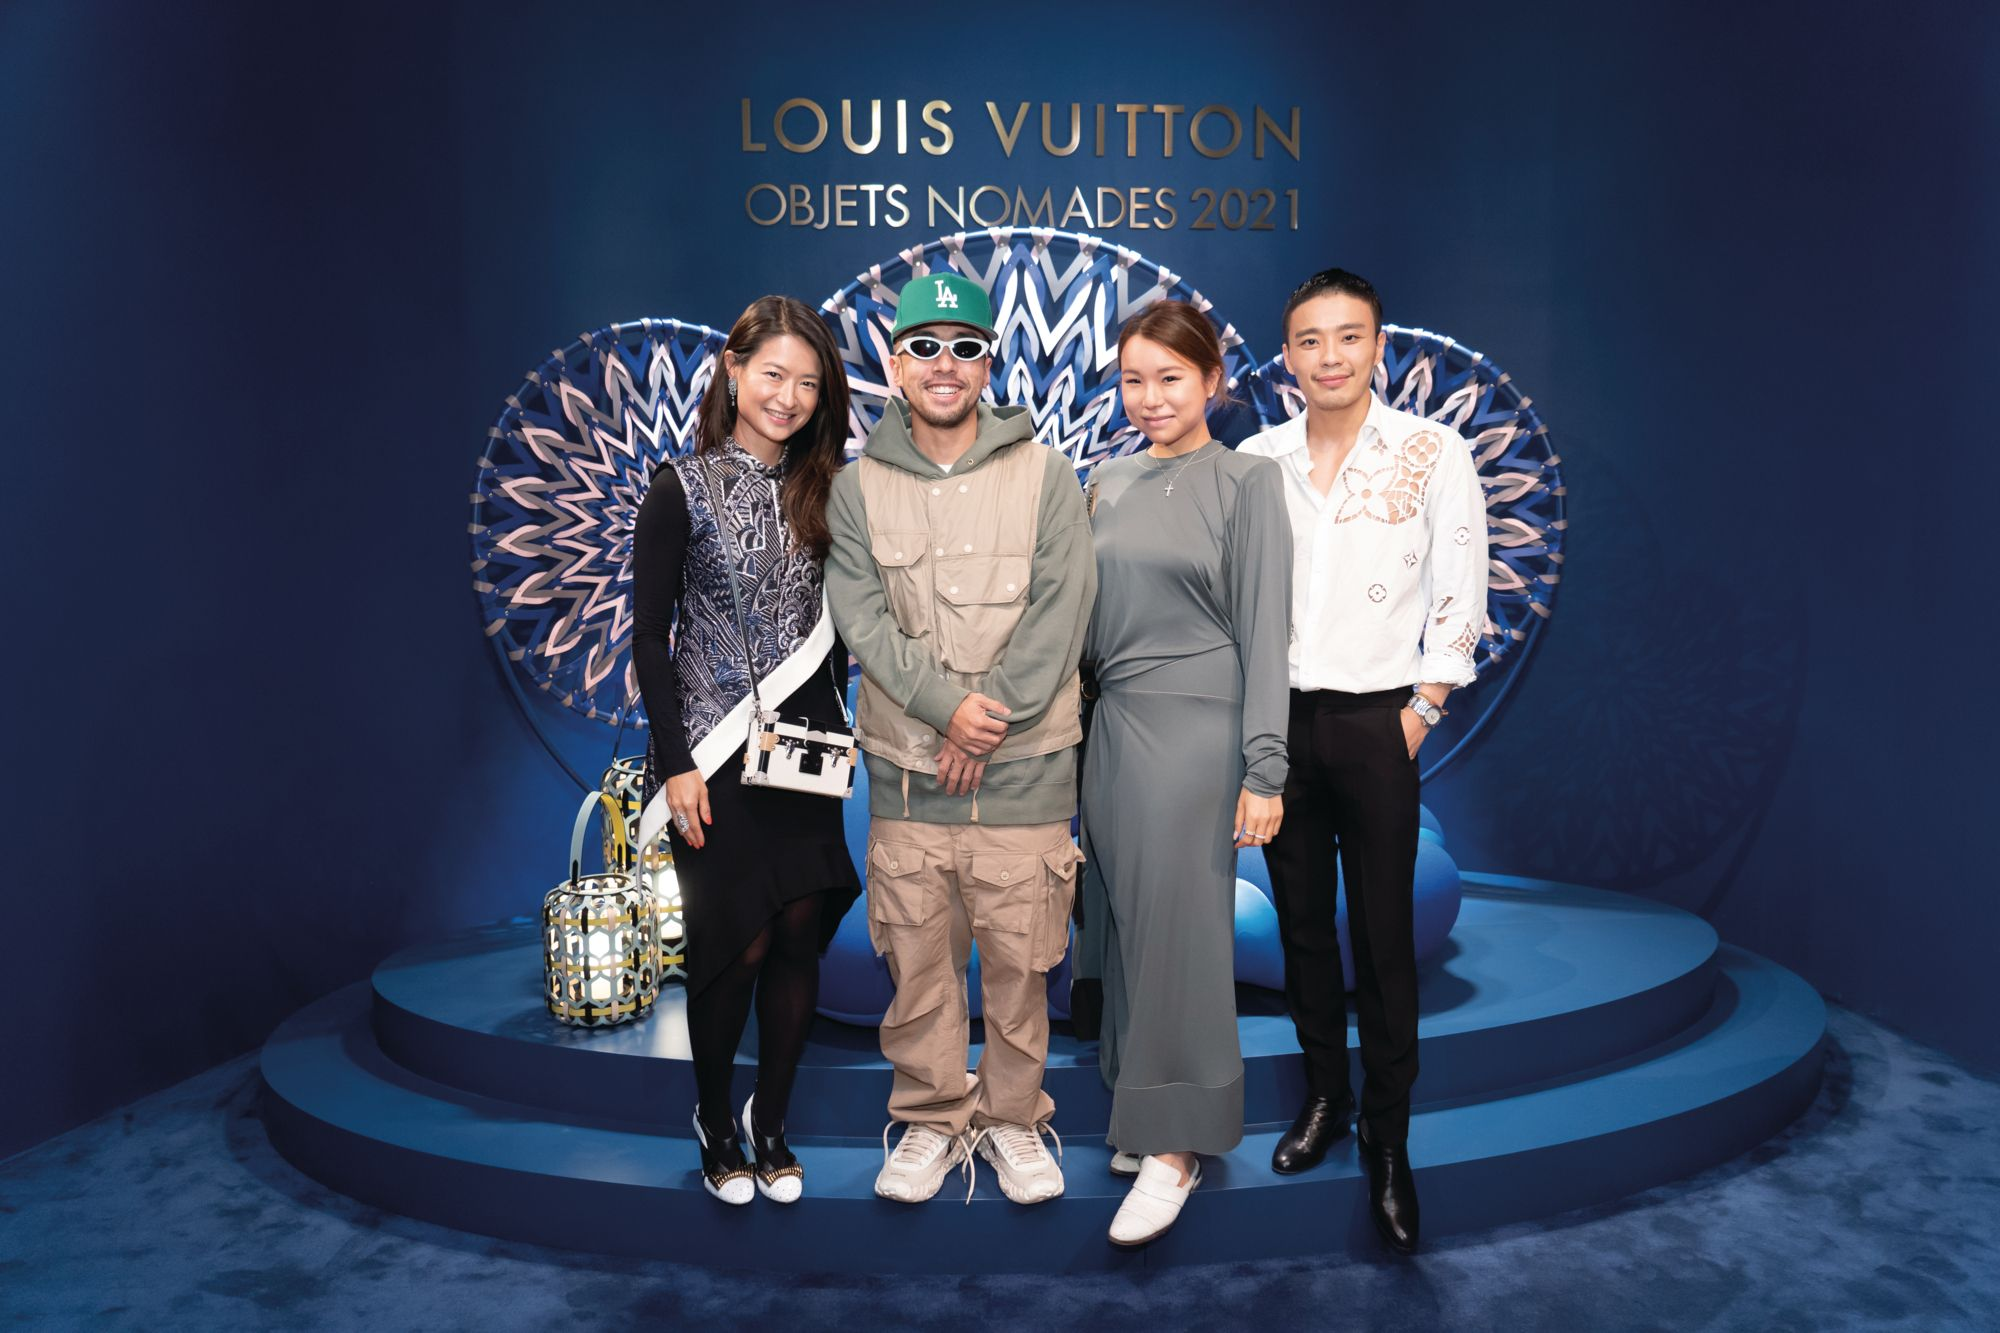 """Louis Vuitton Opens Its Objets Nomades Exhibition """"Momento"""" In Central"""